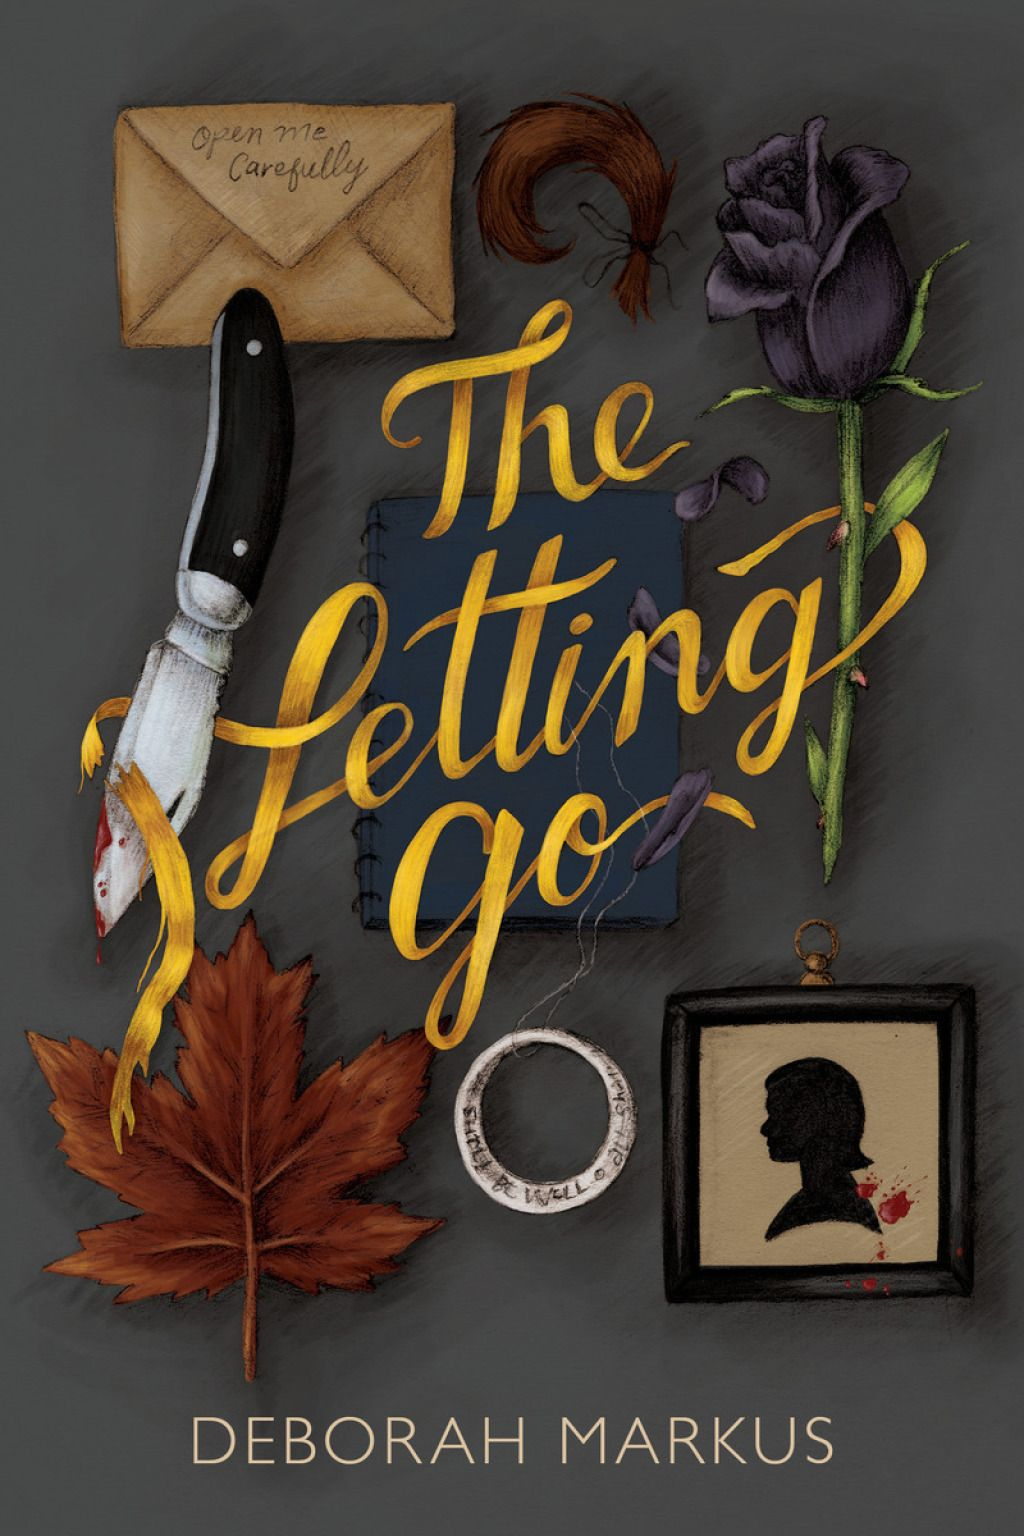 The Letting Go Ebook